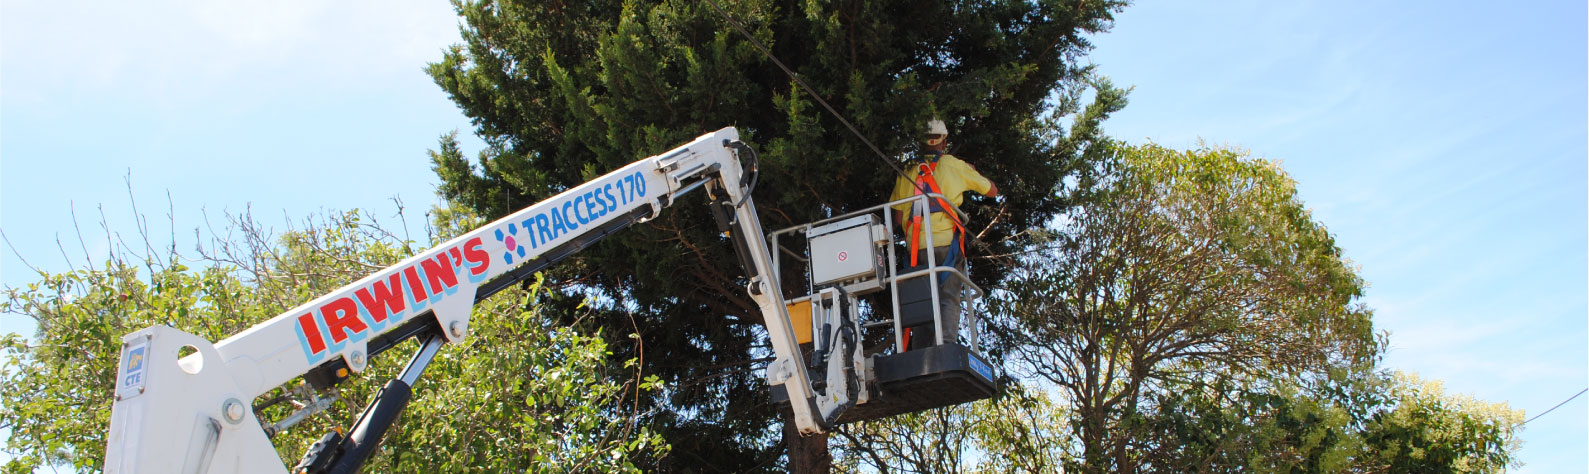 Irwins Tree Removal Geelong 1800 801 942